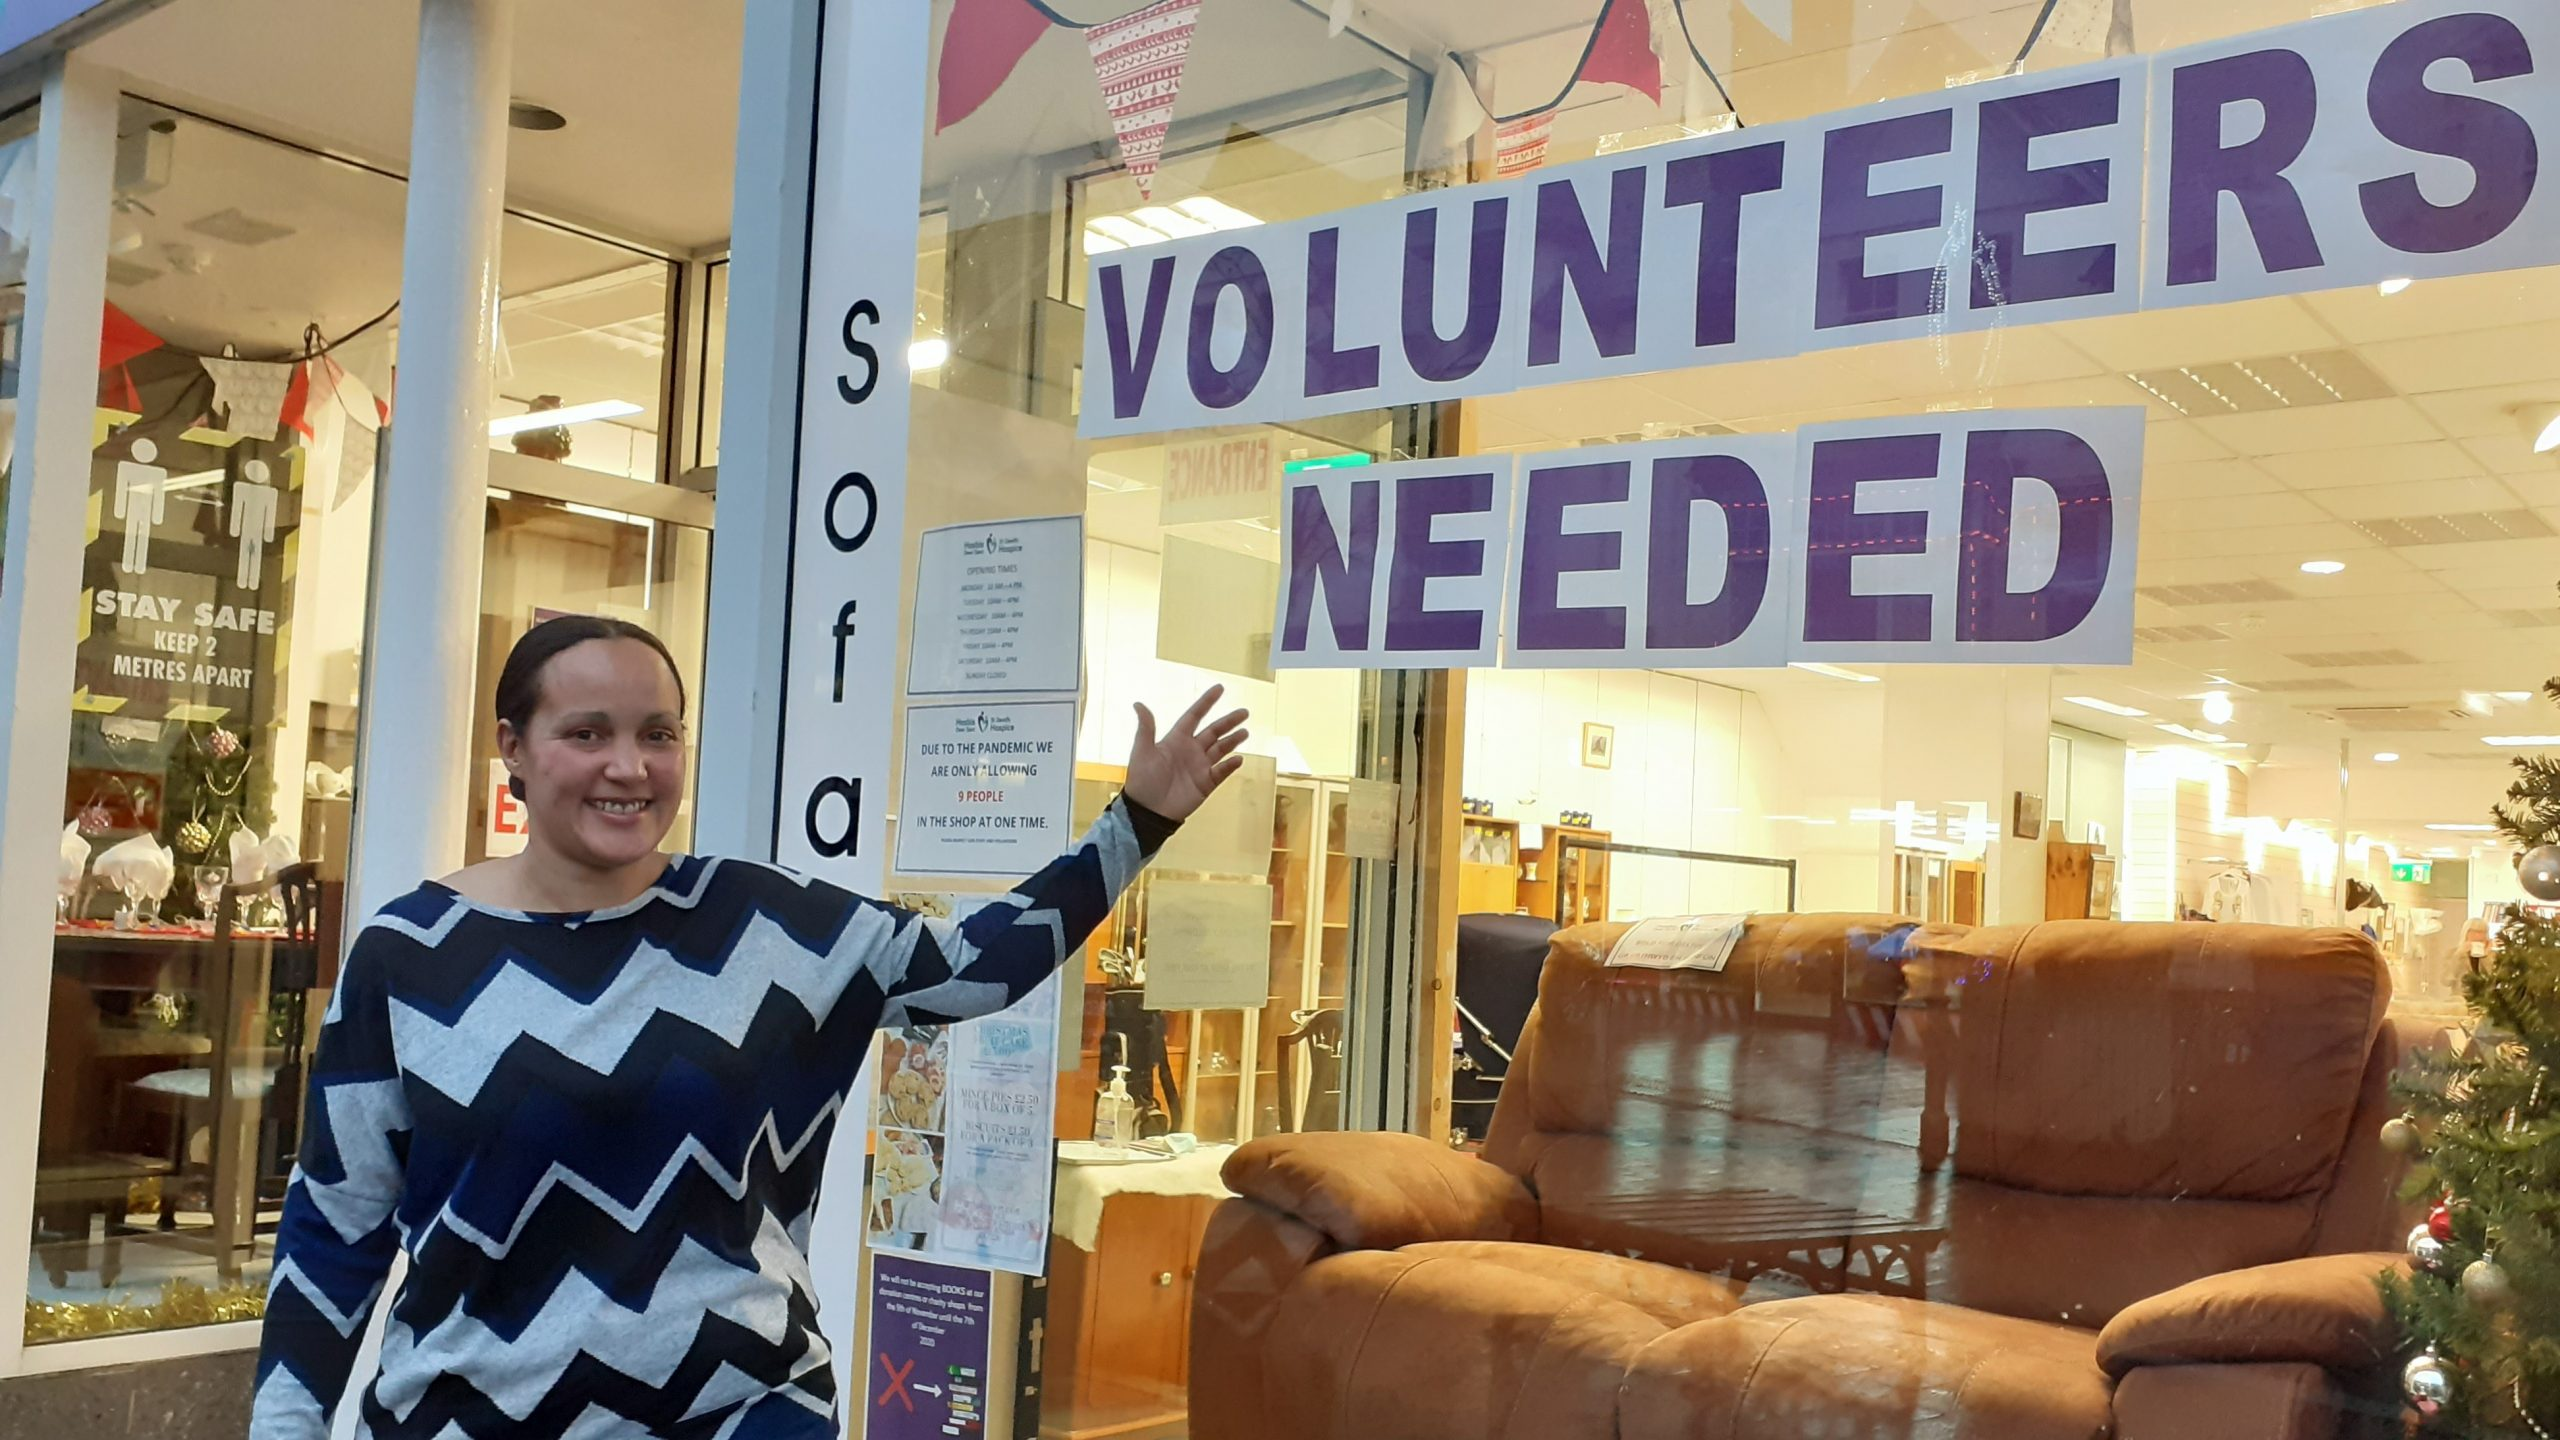 Volunteering – A small amount of your time, can make a big difference.